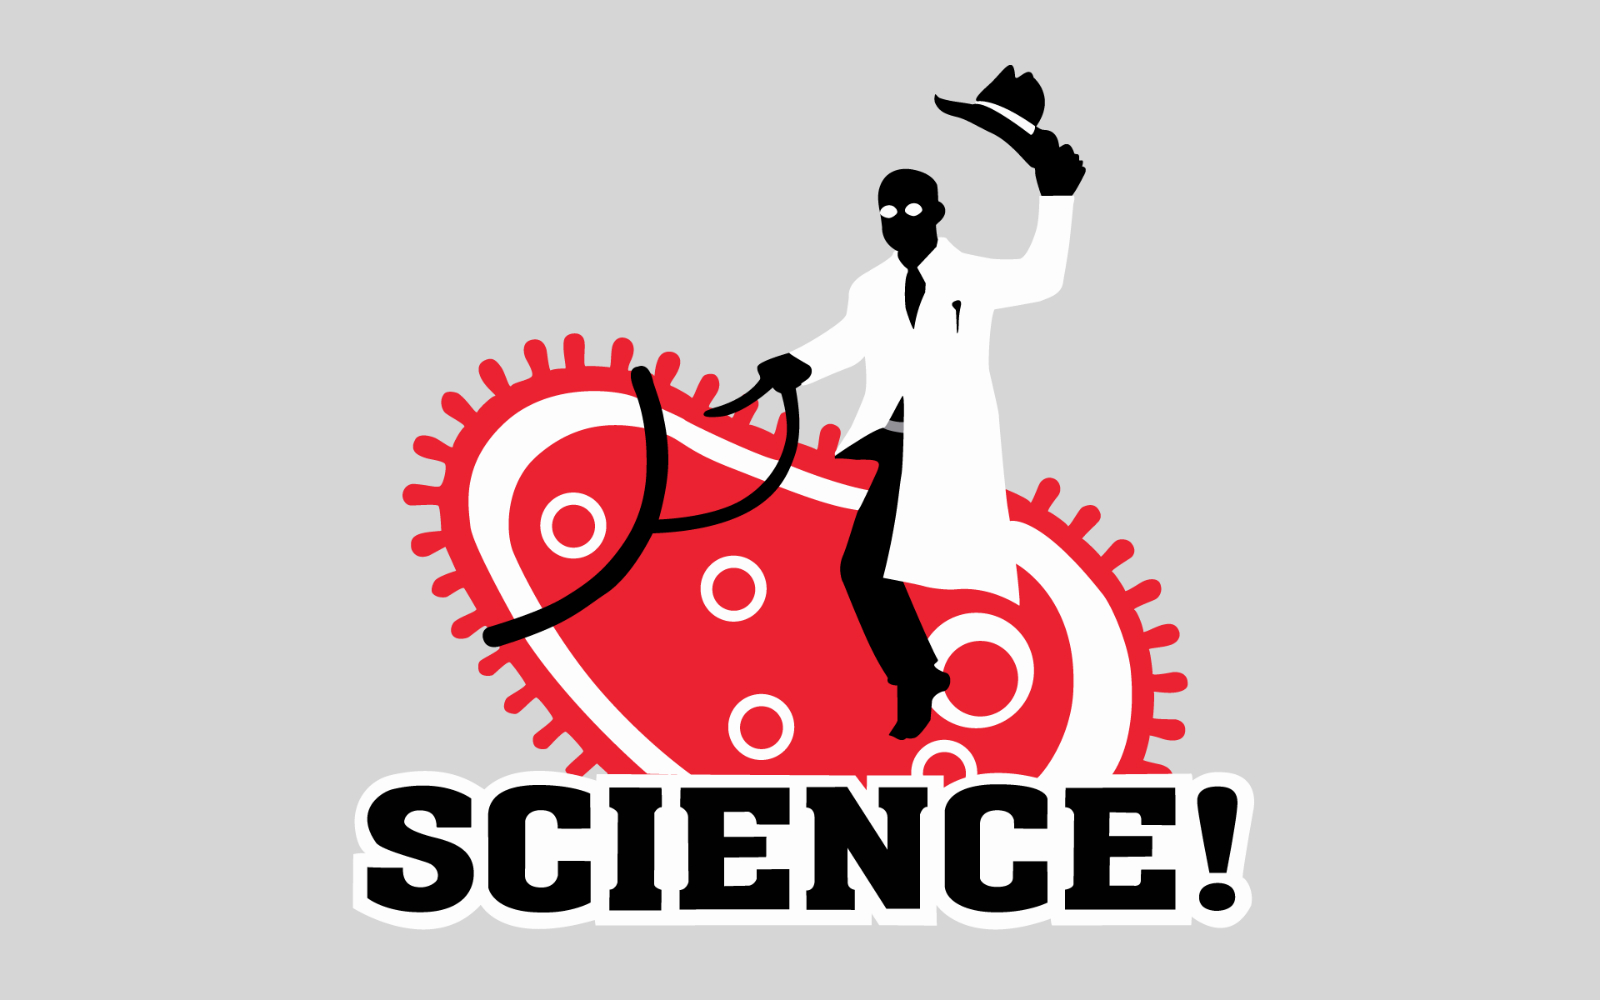 science funny wallpapers facts backgrounds proven scientifically anime scientists weird chemistry hd swedish study universities why mitosis jeofizik hakkinda social